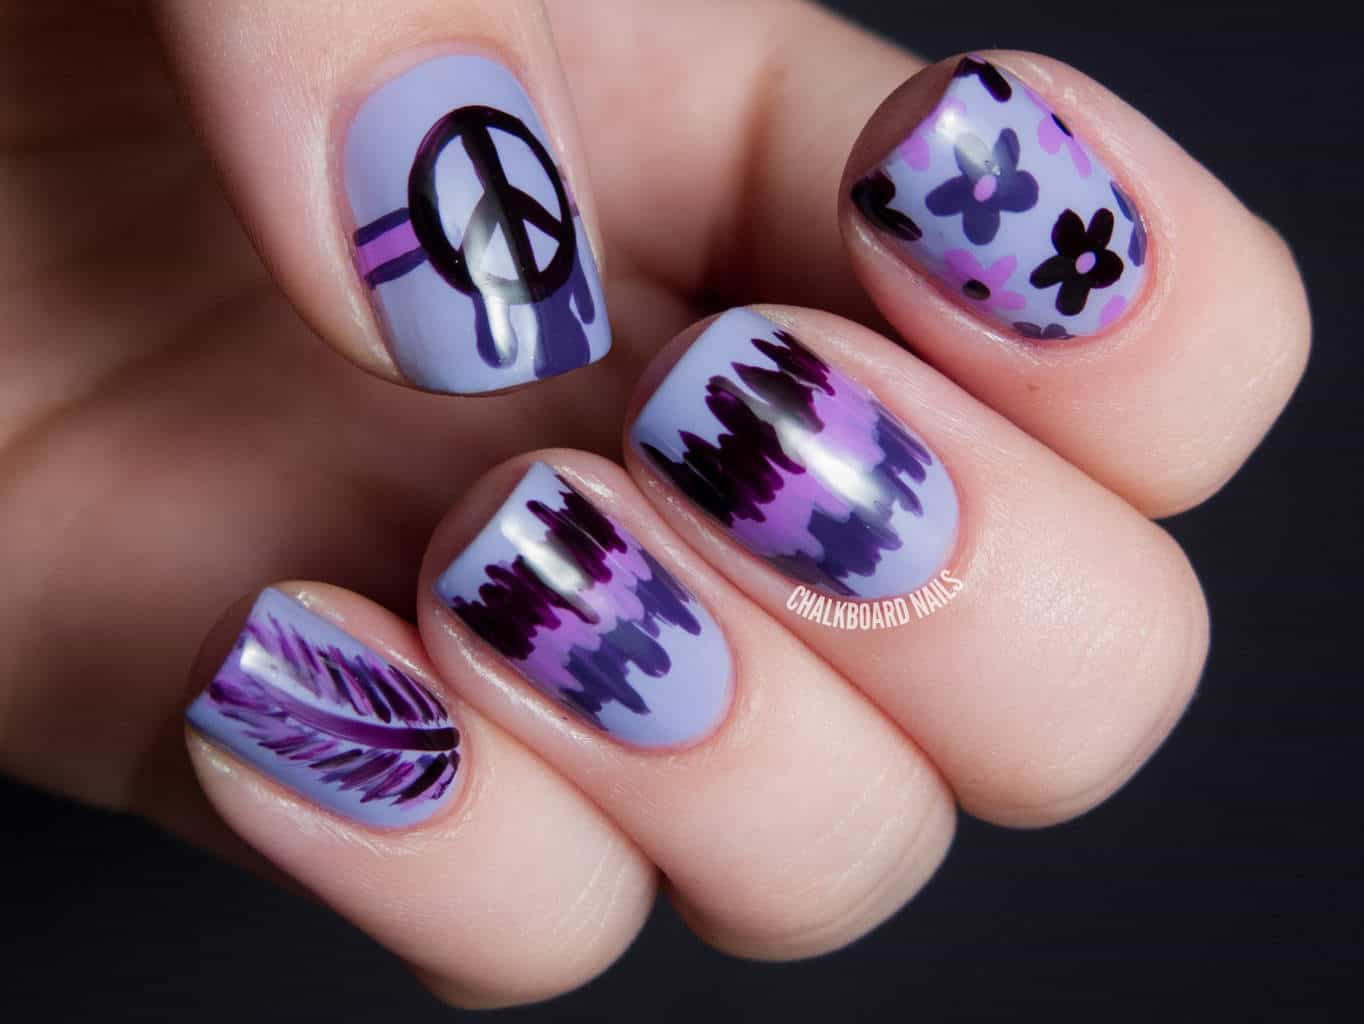 This Purple Manicure Has Been Done On The Natural Nails And We Love It Sometimes You Need To Let Your Breathe Relax From All